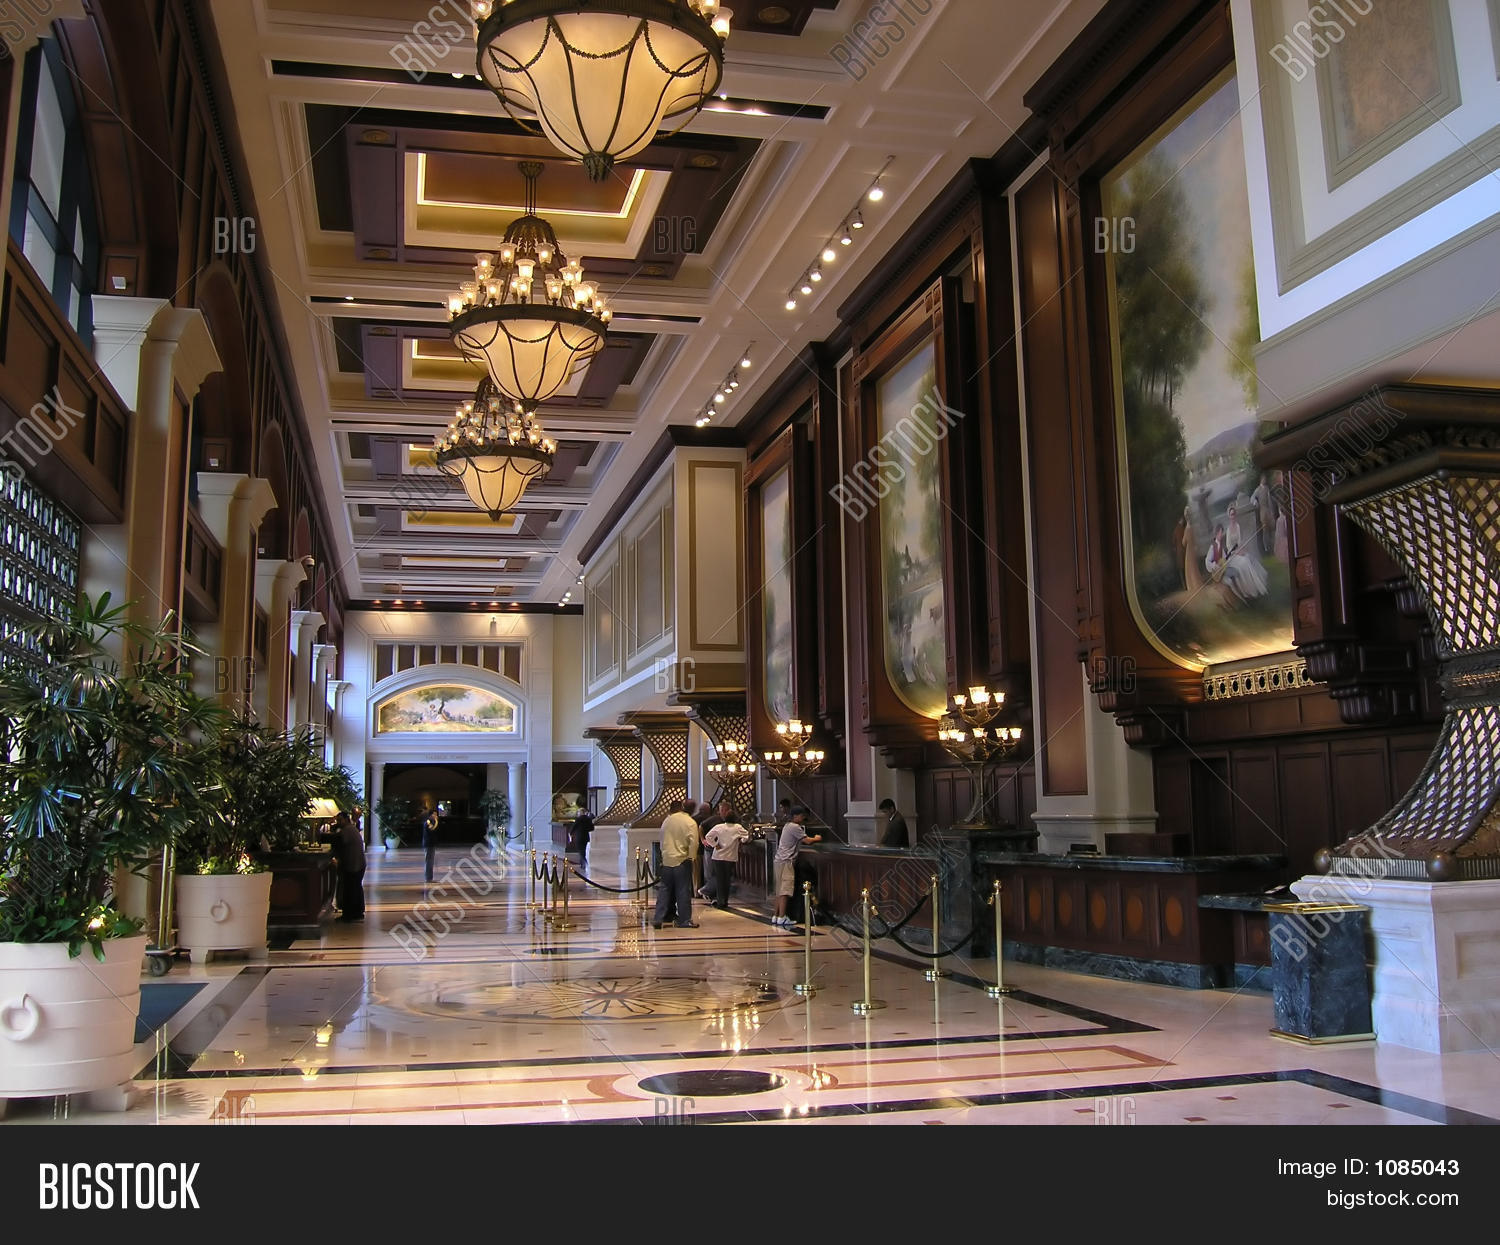 Luxury hotel lobby image photo bigstock for Nice hotel design